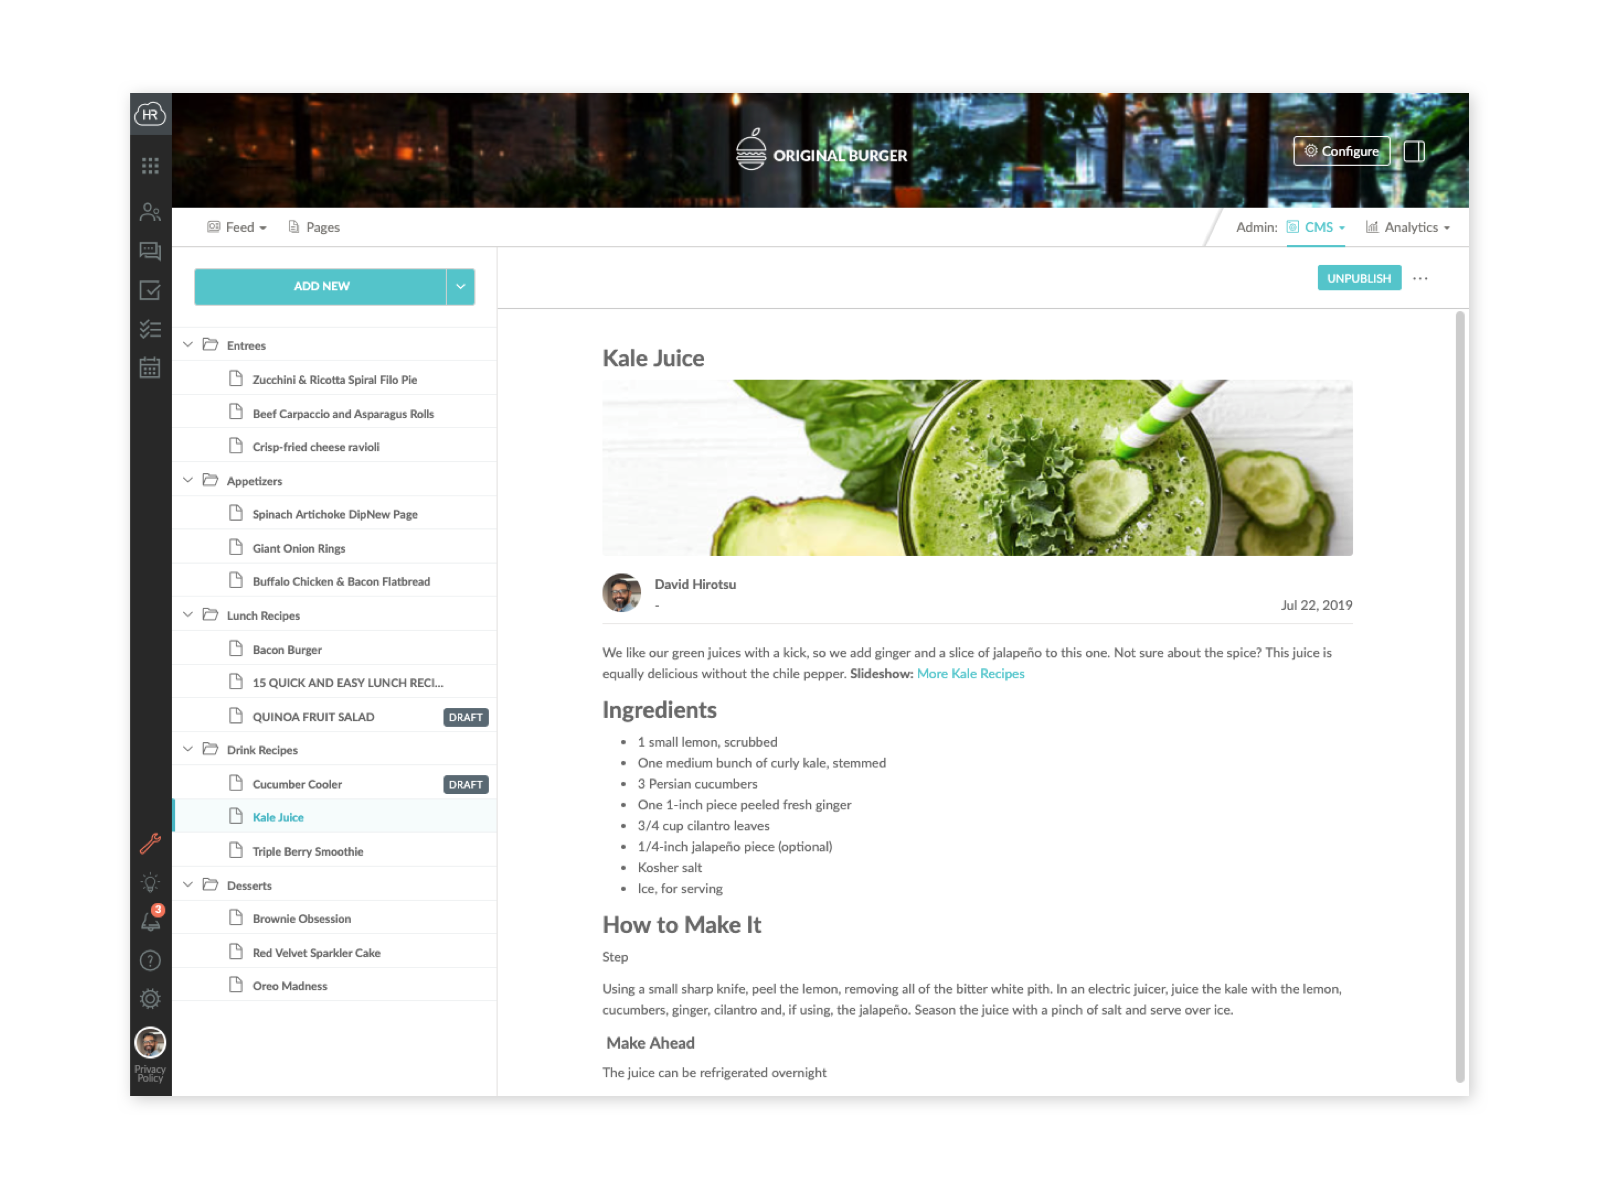 Company intranet pages